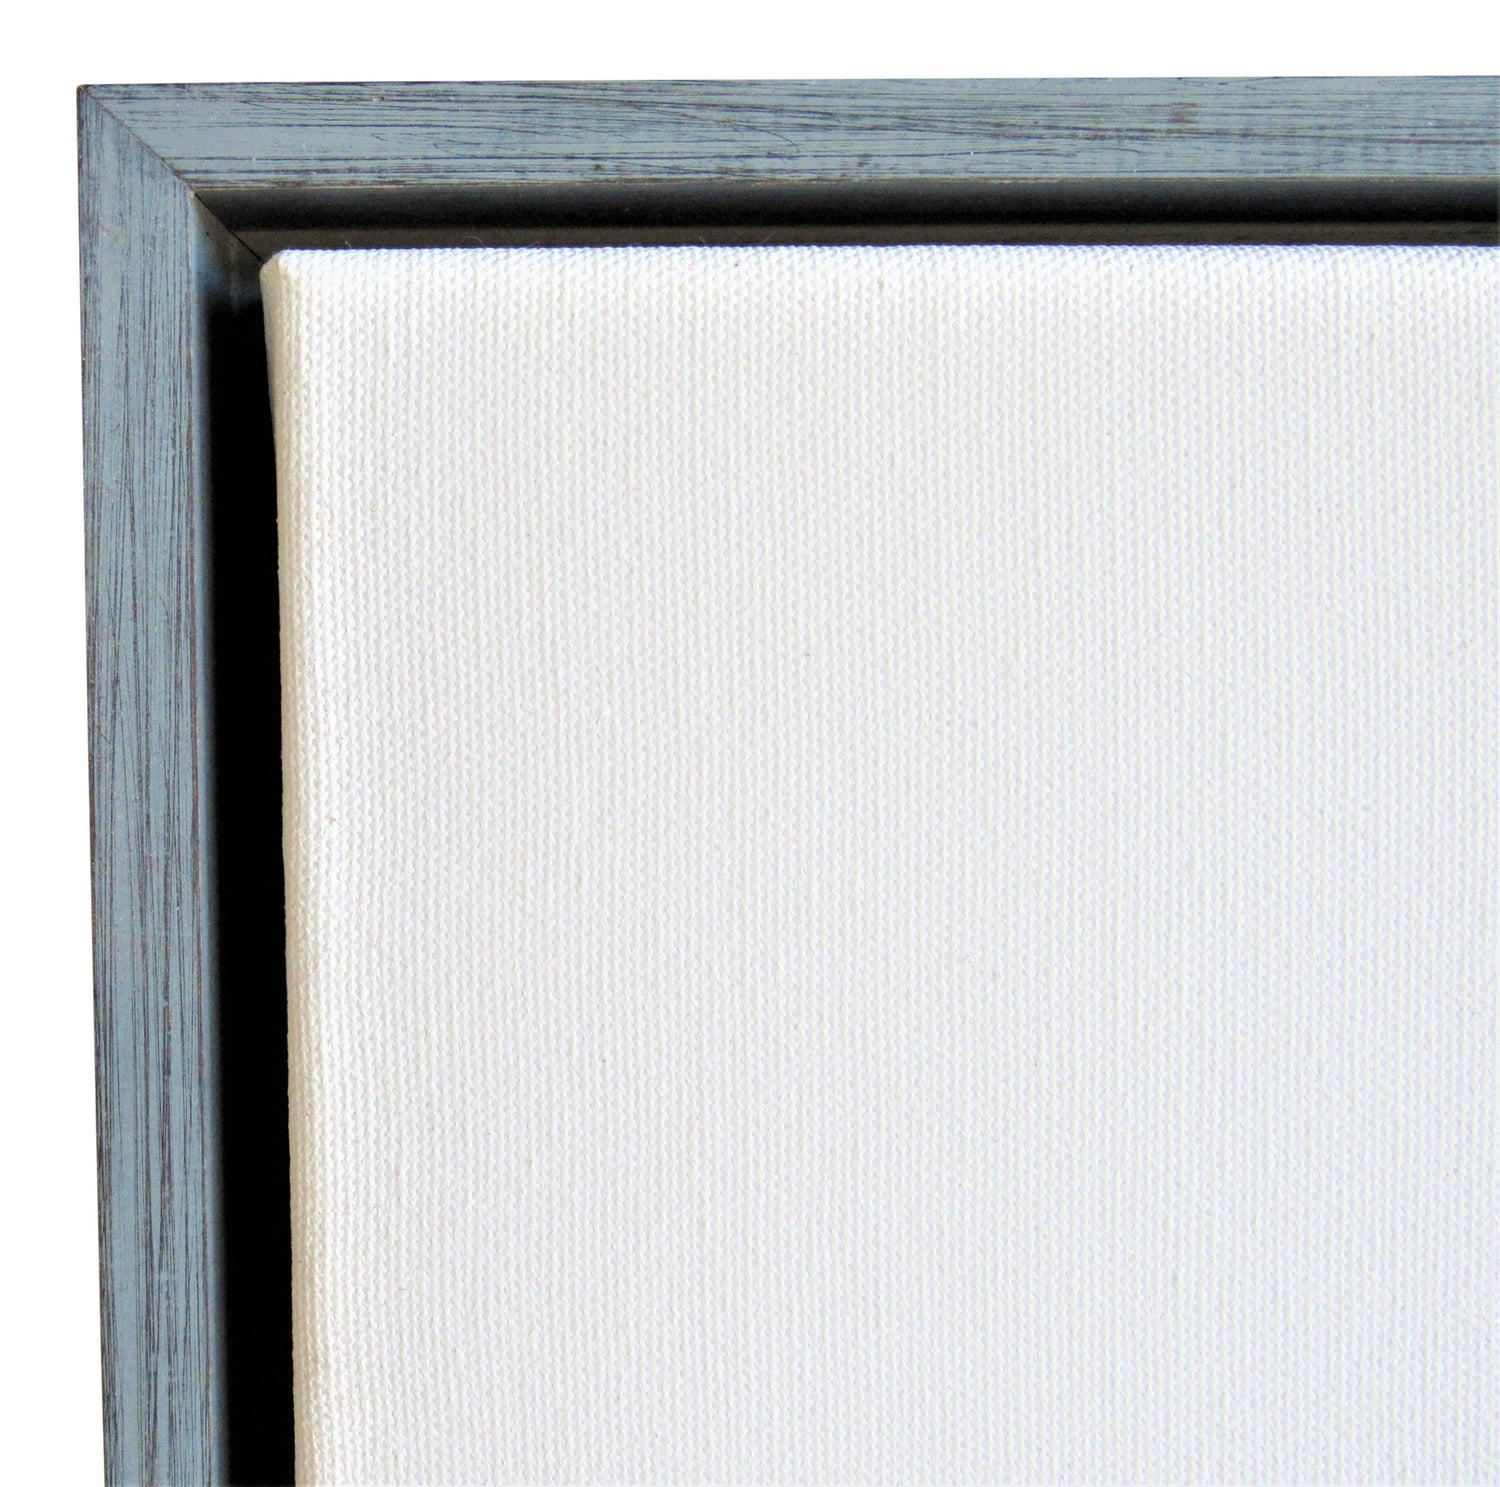 "Weathered Light Blue Floater frame for 1.5"" Canvas"